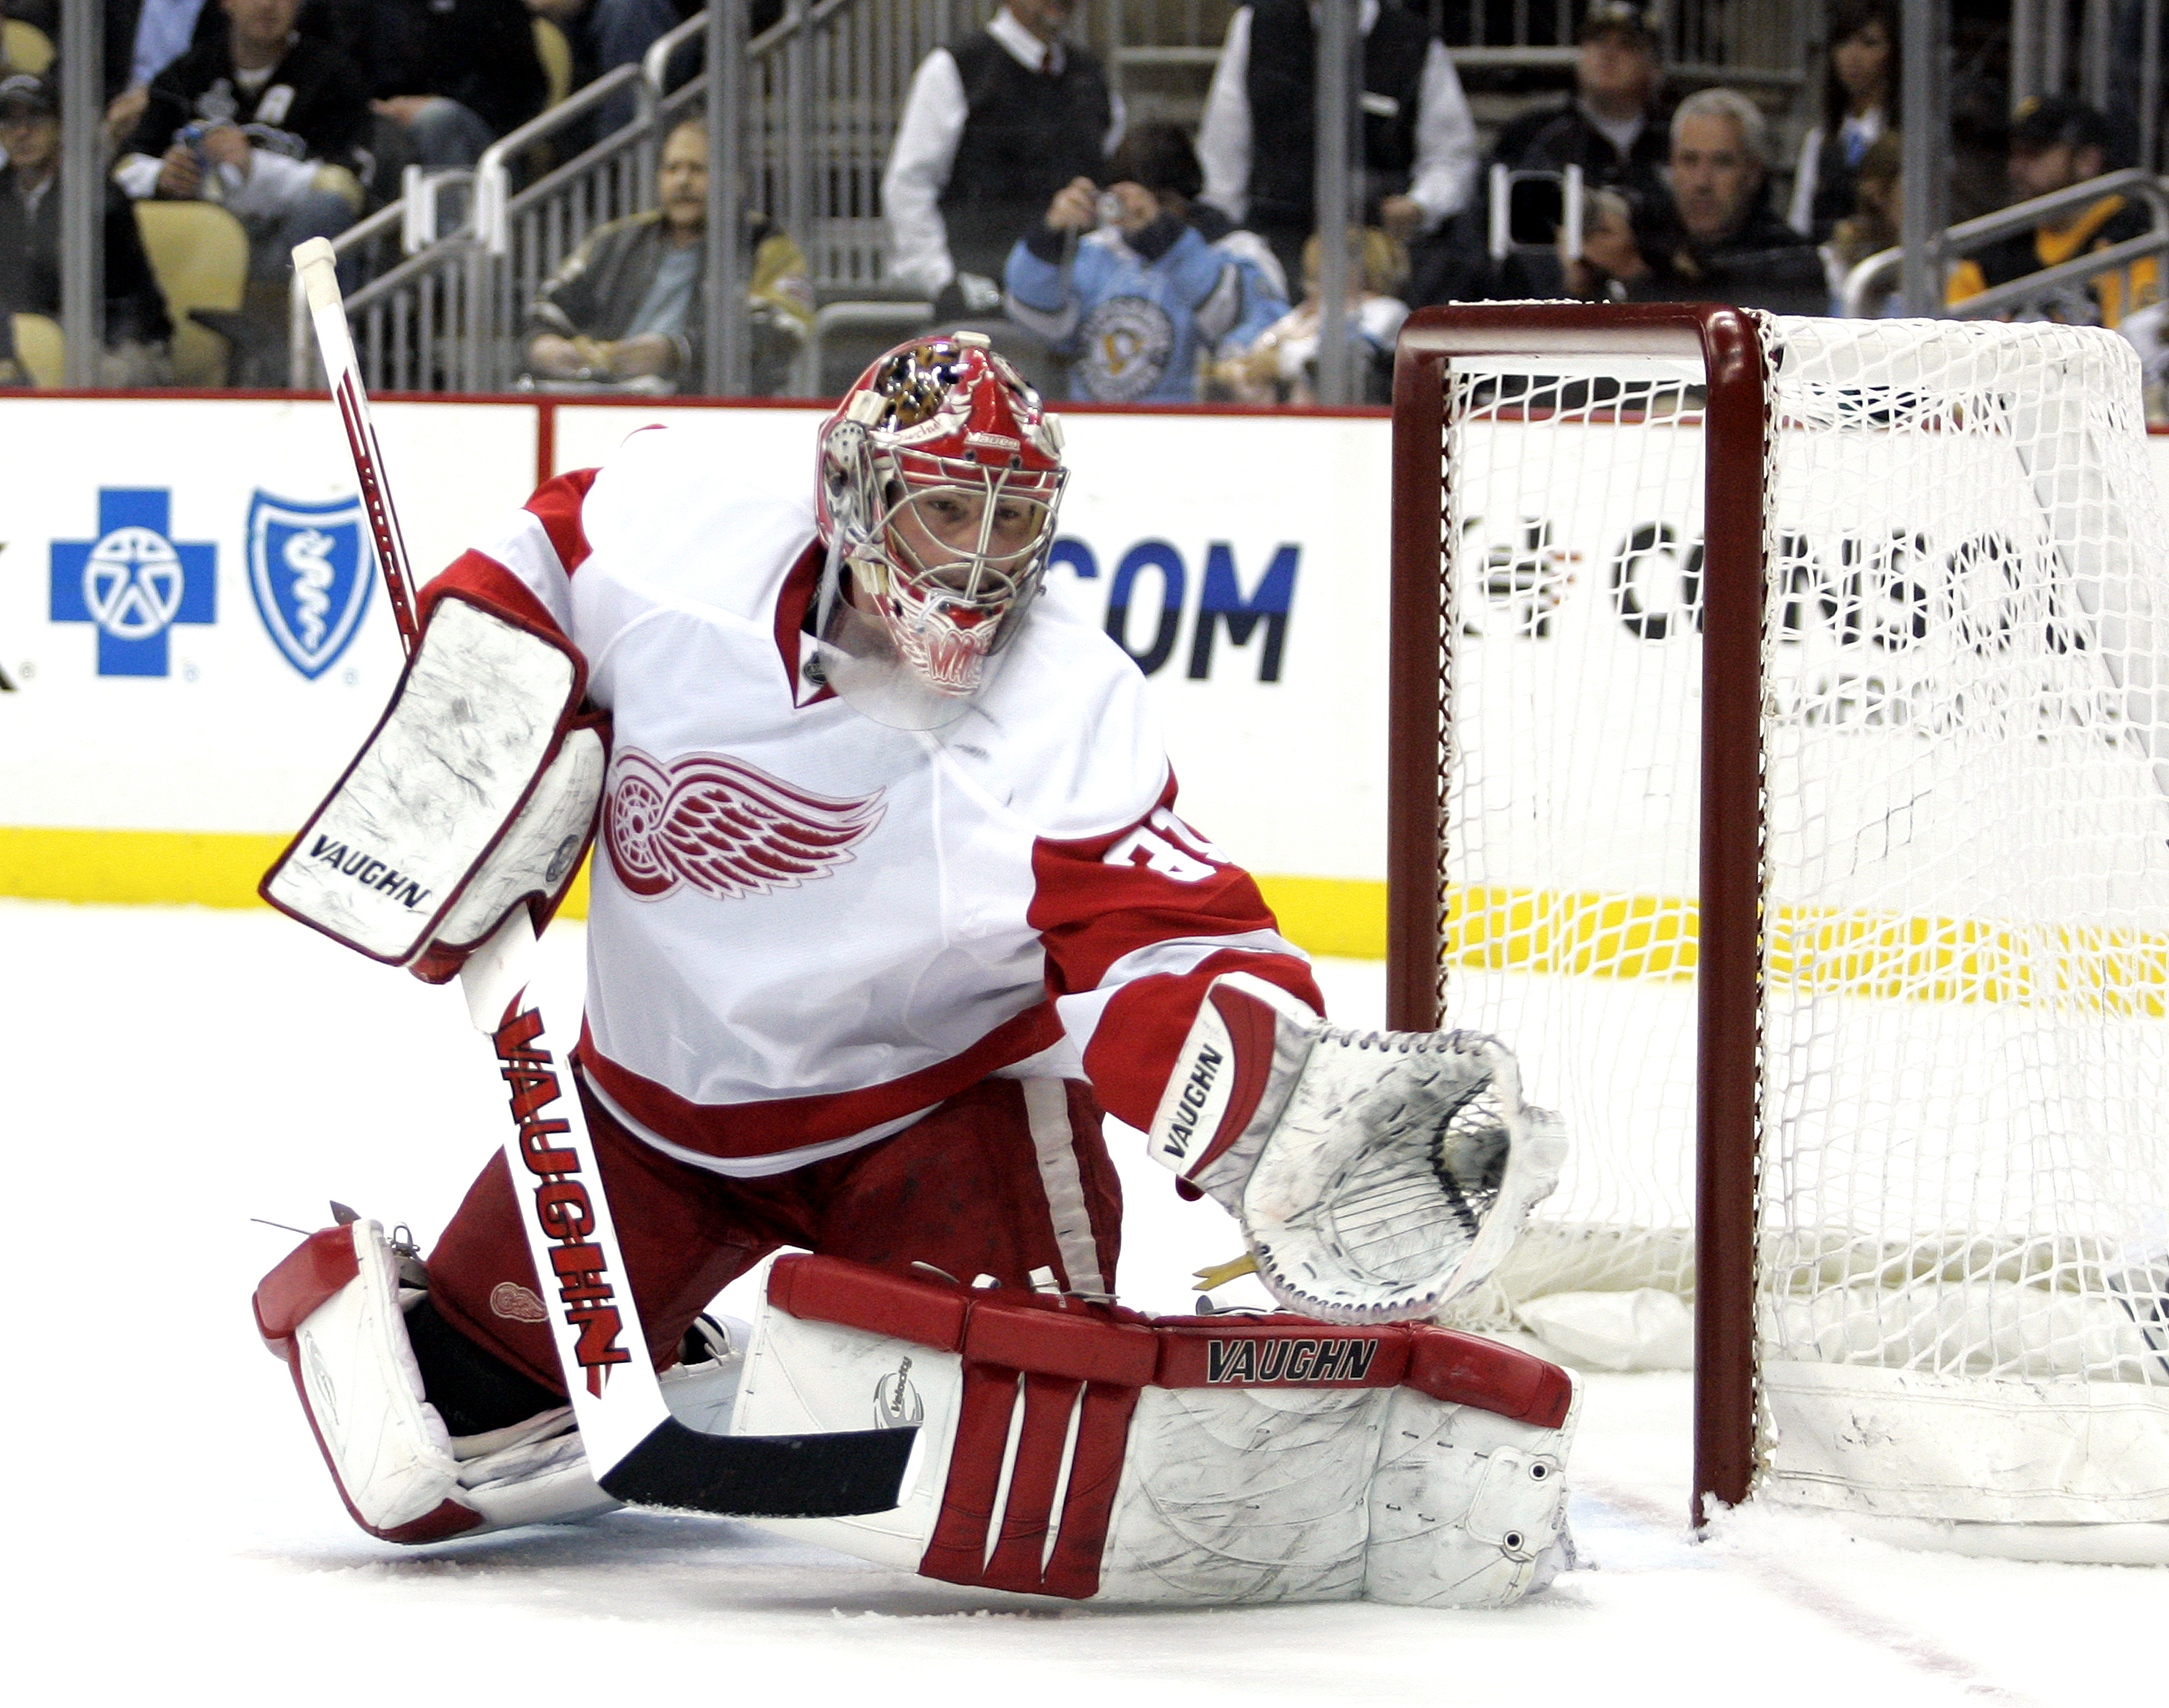 PITTSBURGH, PA - JANUARY 18:  Joey MacDonald #31 of the Detroit Red Wings makes a glove save against the Pittsburgh Penguins at Consol Energy Center on January 18, 2011 in Pittsburgh, Pennsylvania.  (Photo by Justin K. Aller/Getty Images)